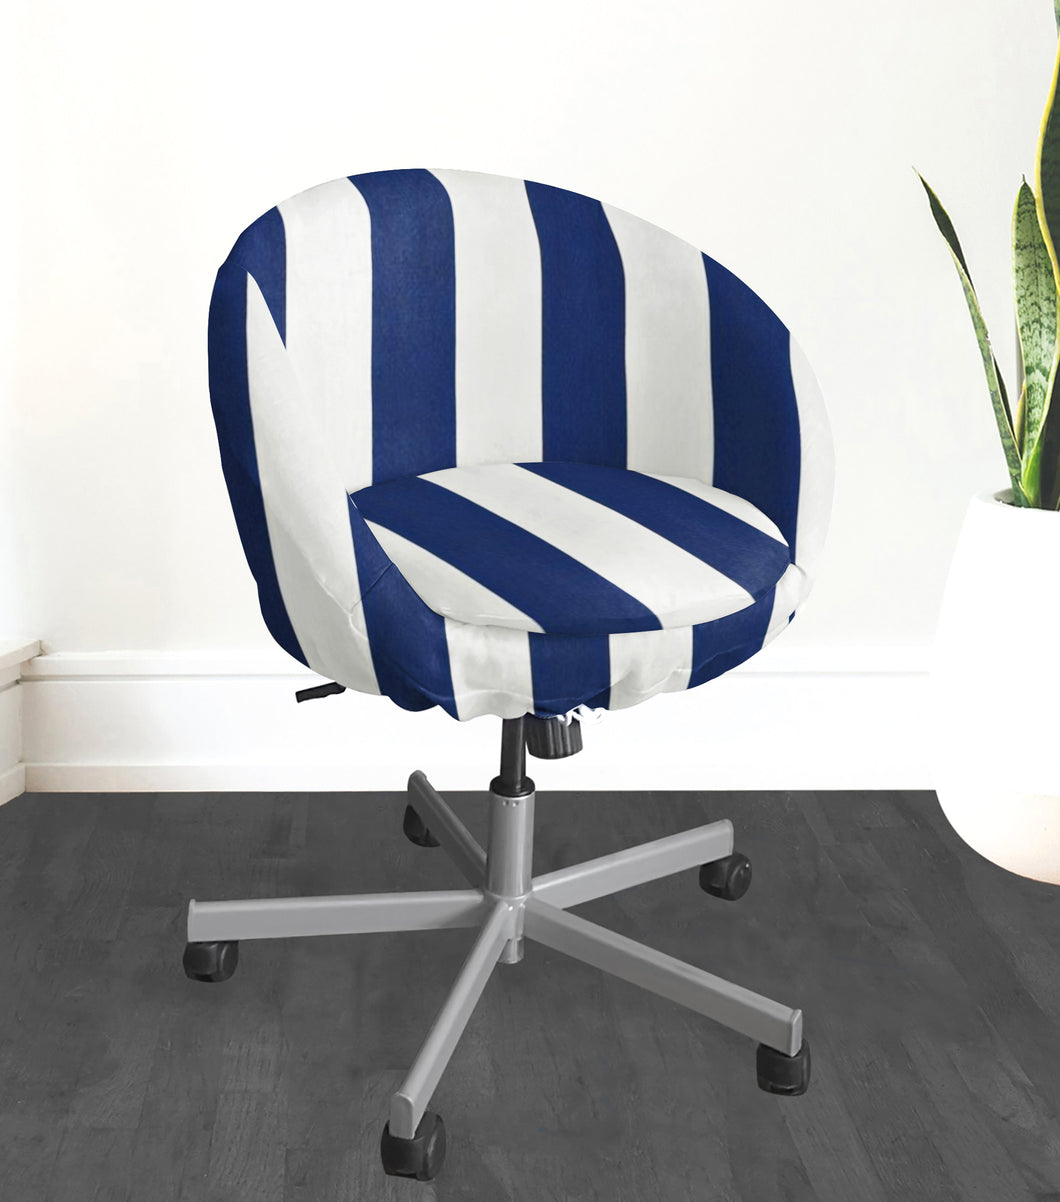 IKEA SKRUVSTA Chair Slip Cover, Navy Blue Cabana Stripe